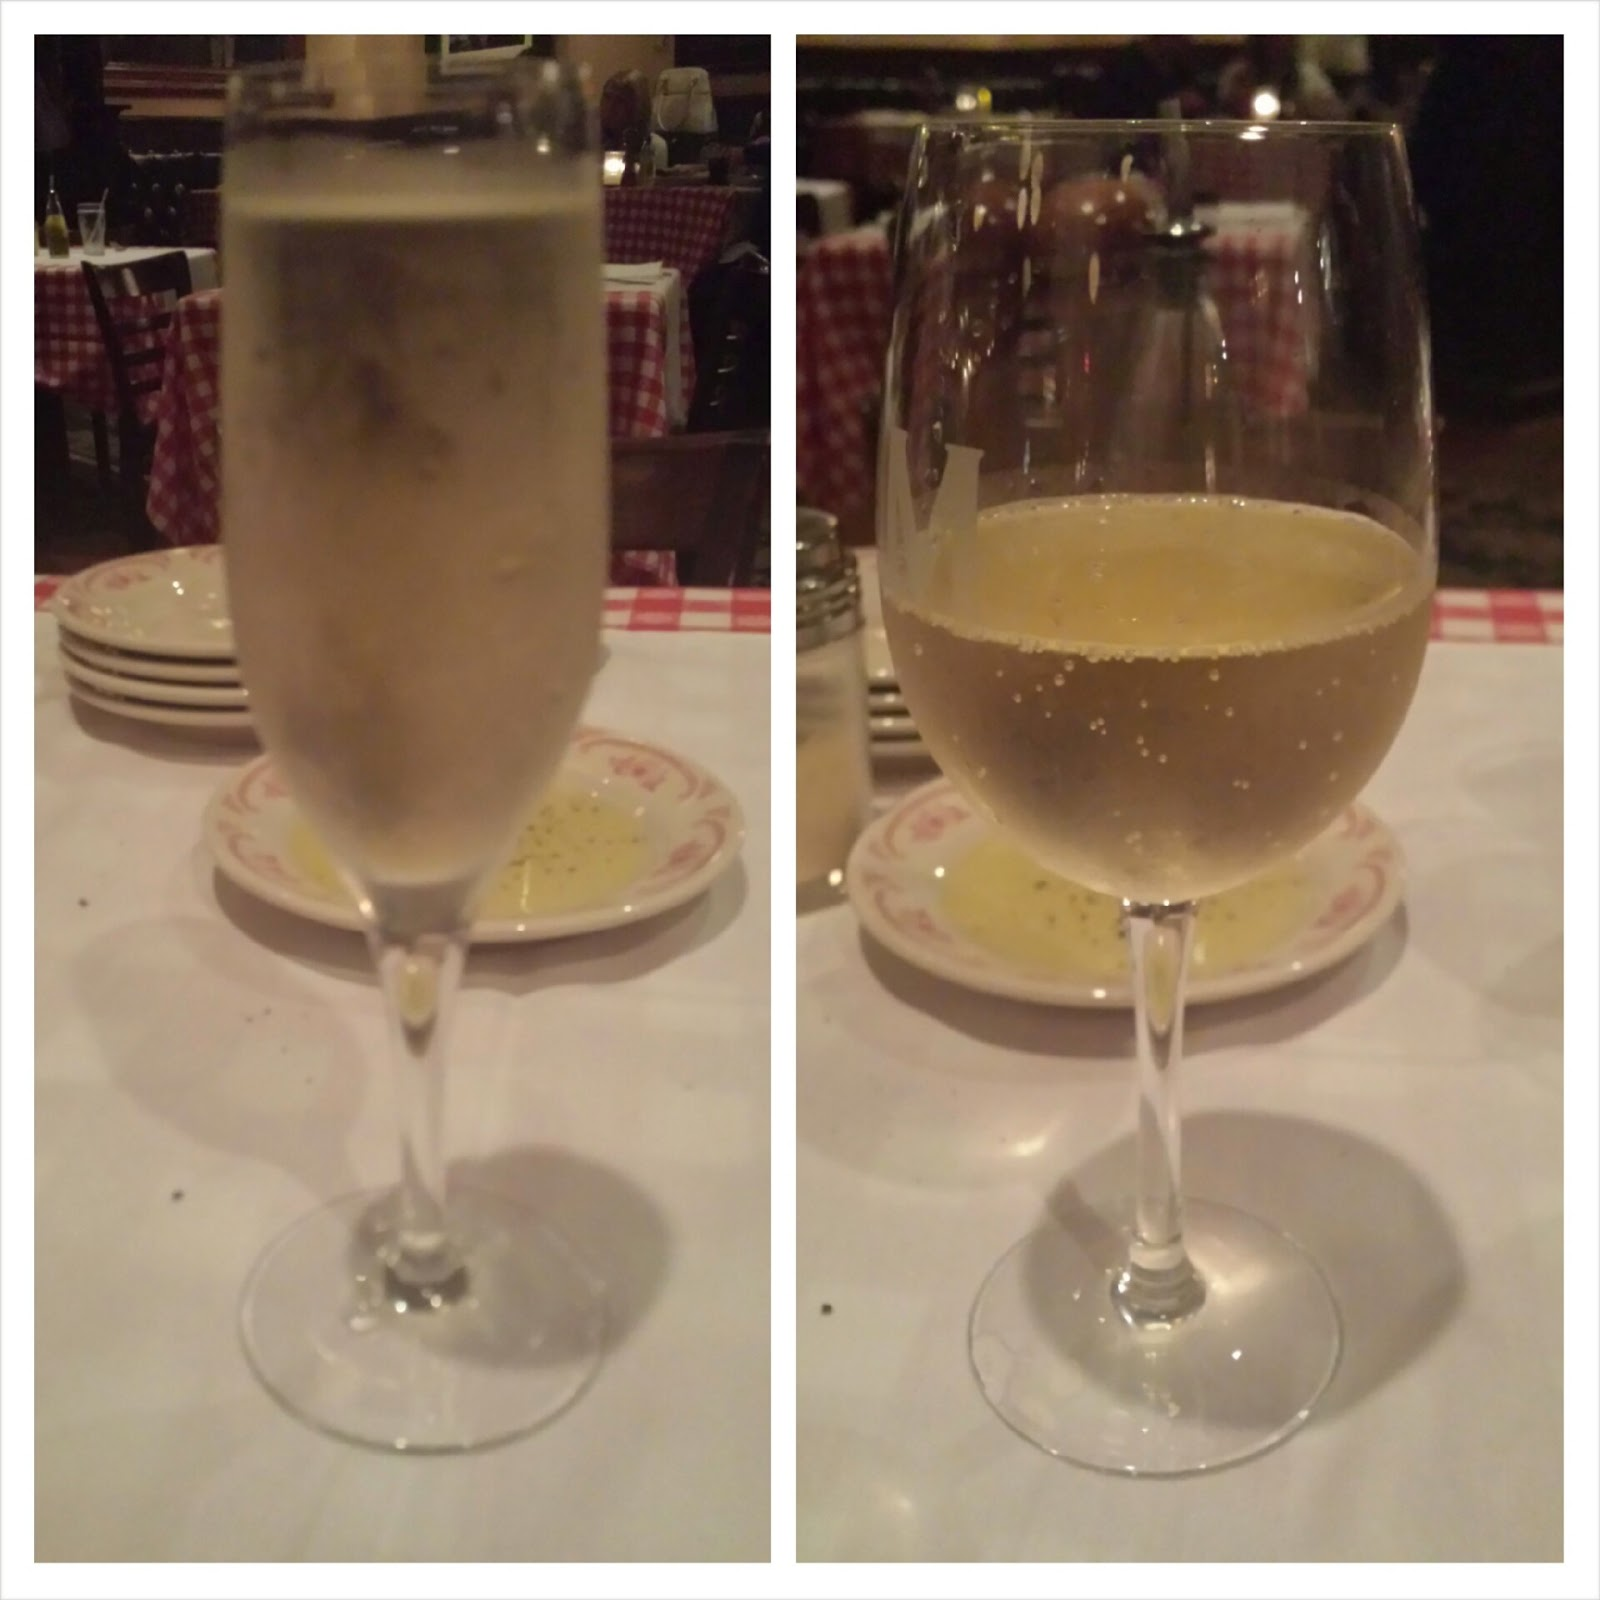 Maggiano's White Wines via ProductReviewMom.com